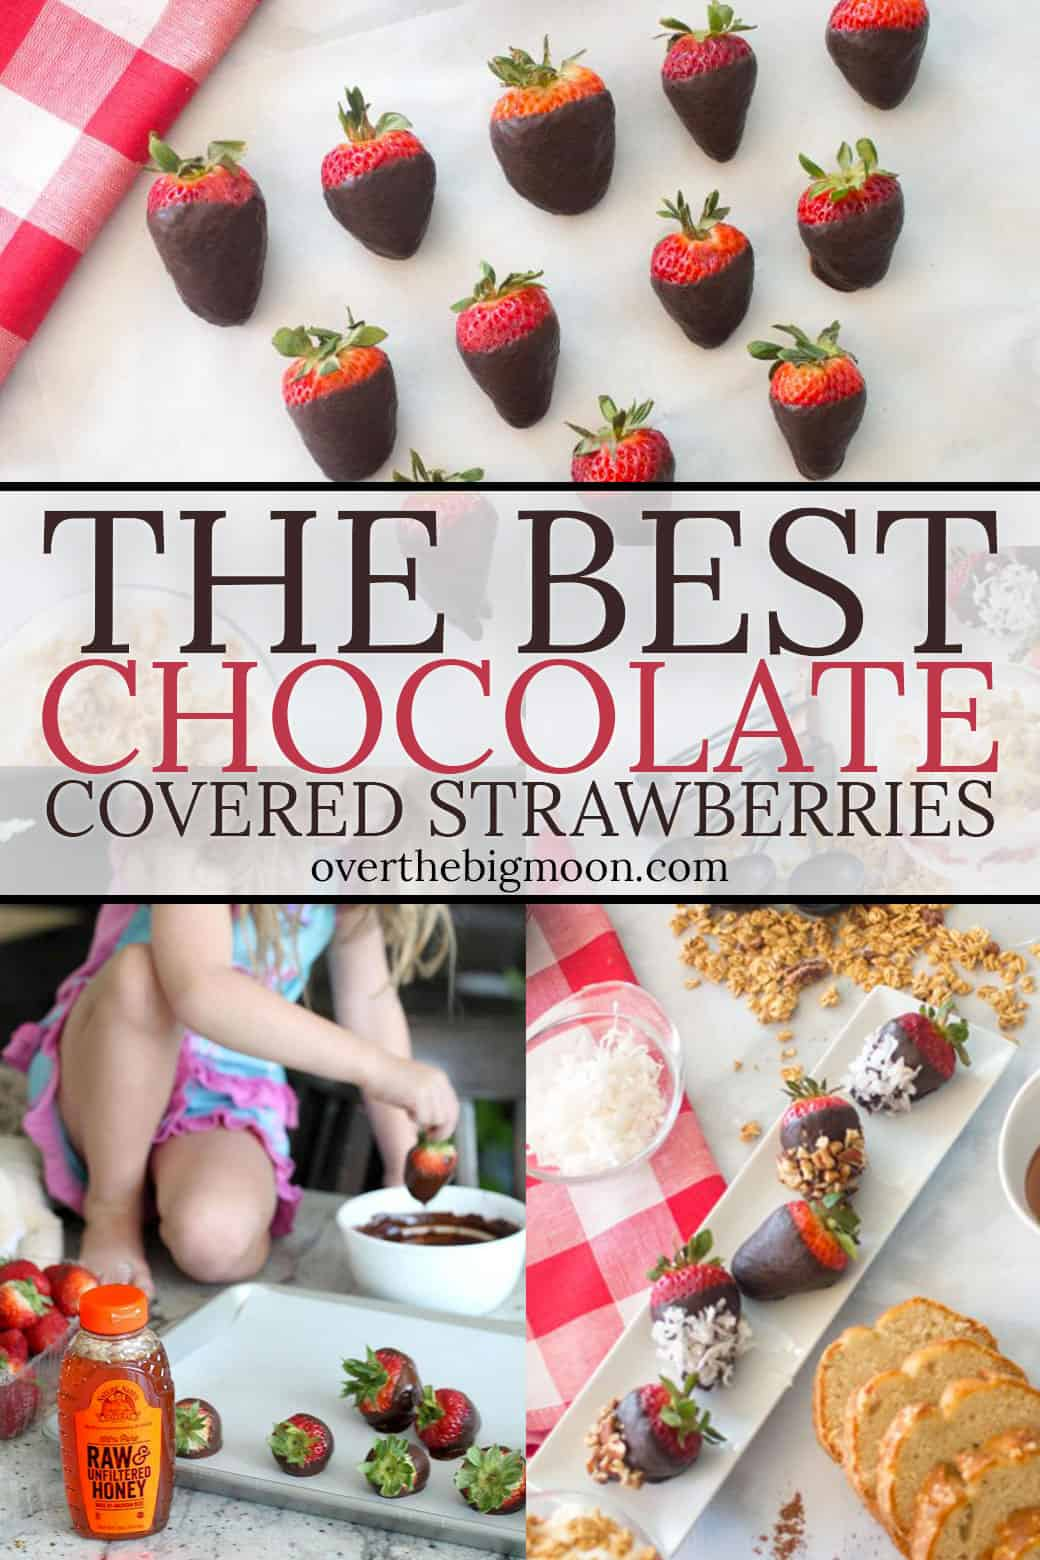 The BEST Chocolate Covered Strawberries! This recipe is so quick and easy and kids LOVE to help make them! From overthebigmoon.com!